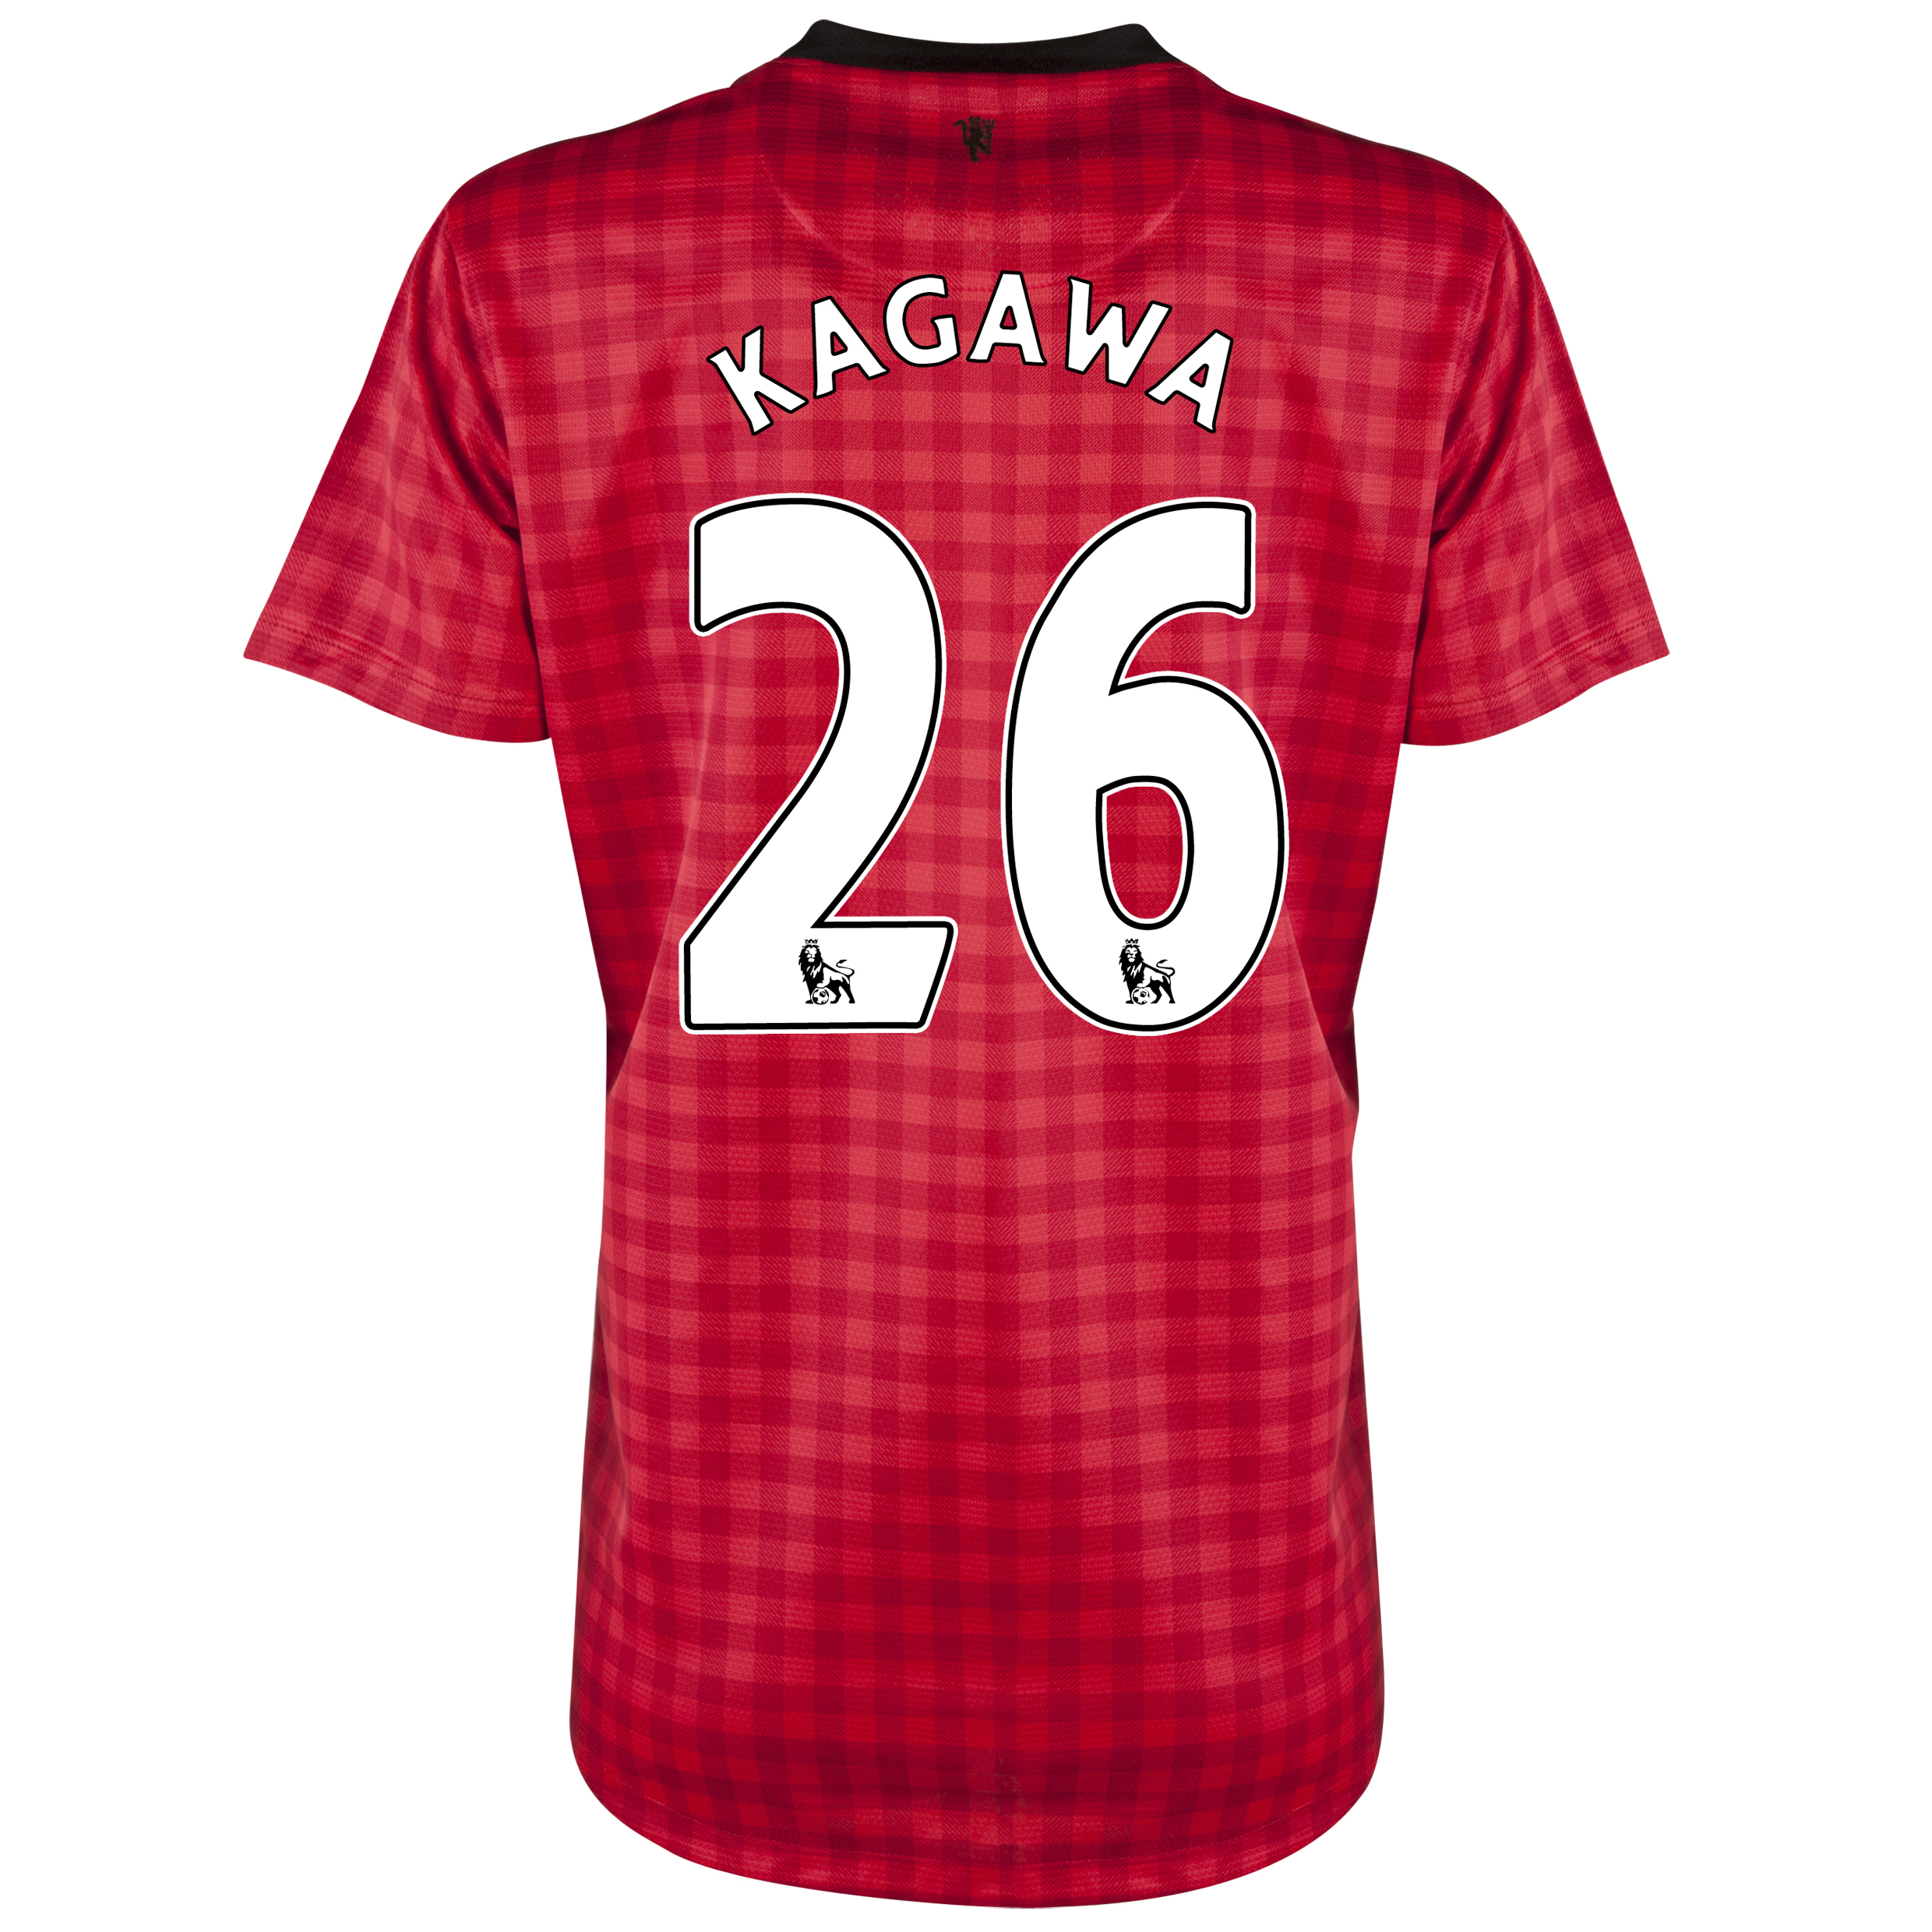 Manchester United Home Shirt 2012/13 - Womens with Kagawa 26 printing